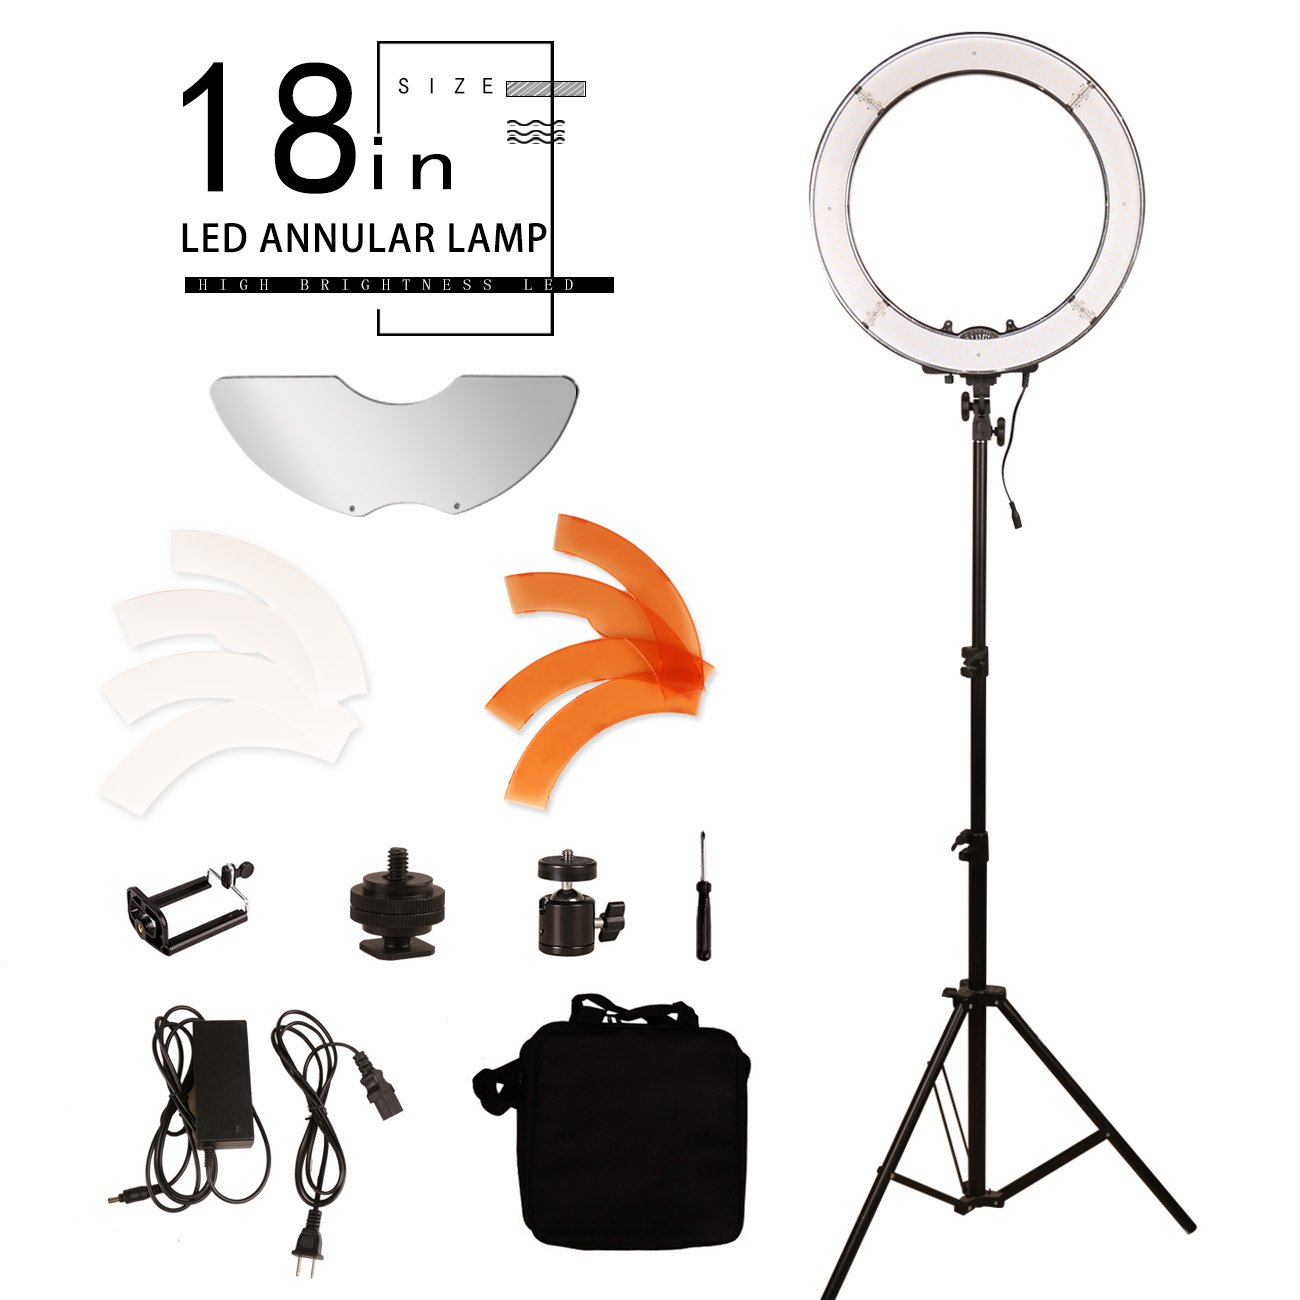 BYWLWLMY Ddjustable 18 Inch 240 Led Ring Light with Stand and Mirror for Makeup Lights,Video Shooting,Product life Shooting,Live Beauty Lights by BYWLWLMY